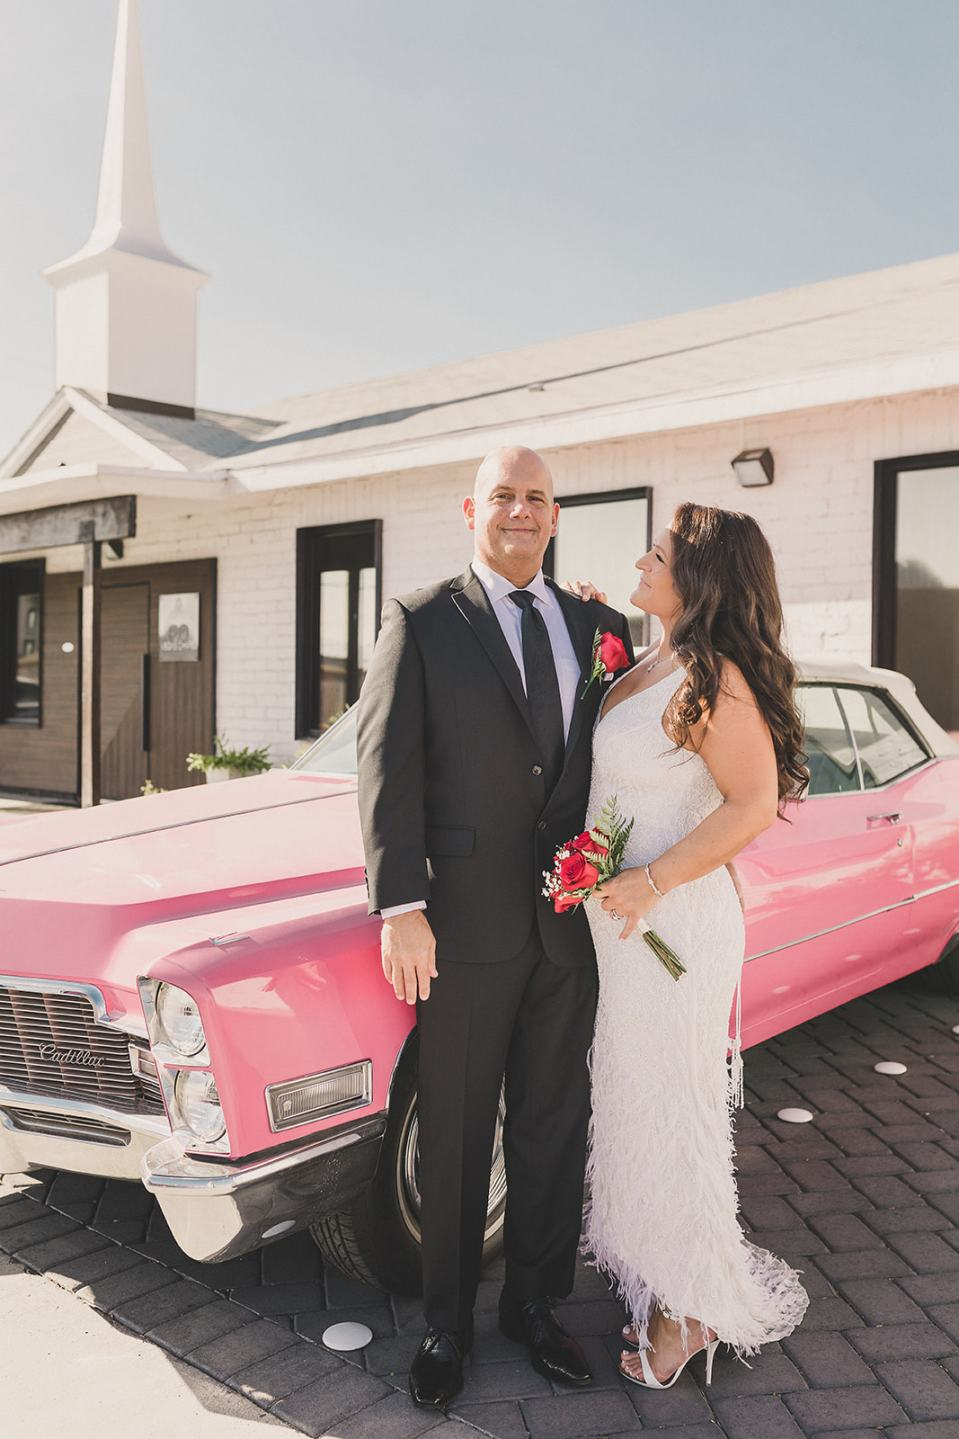 newlyweds pose by pink Cadillac in Las Vegas